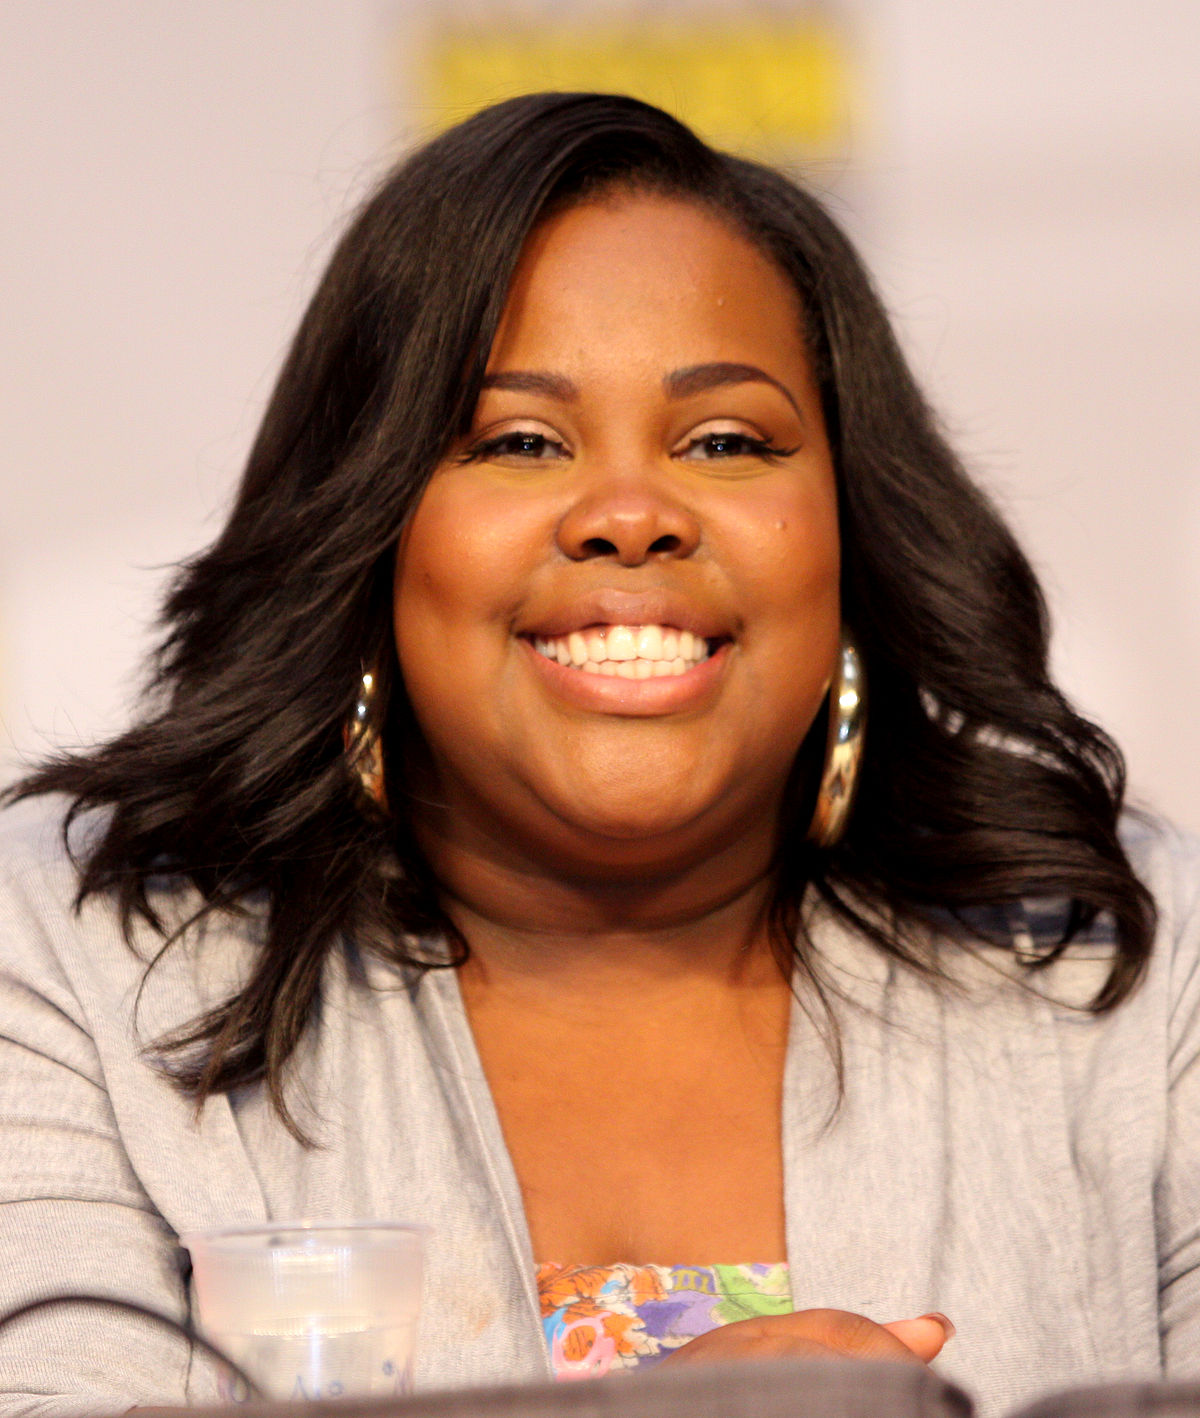 Amber Riley - Wikipedia